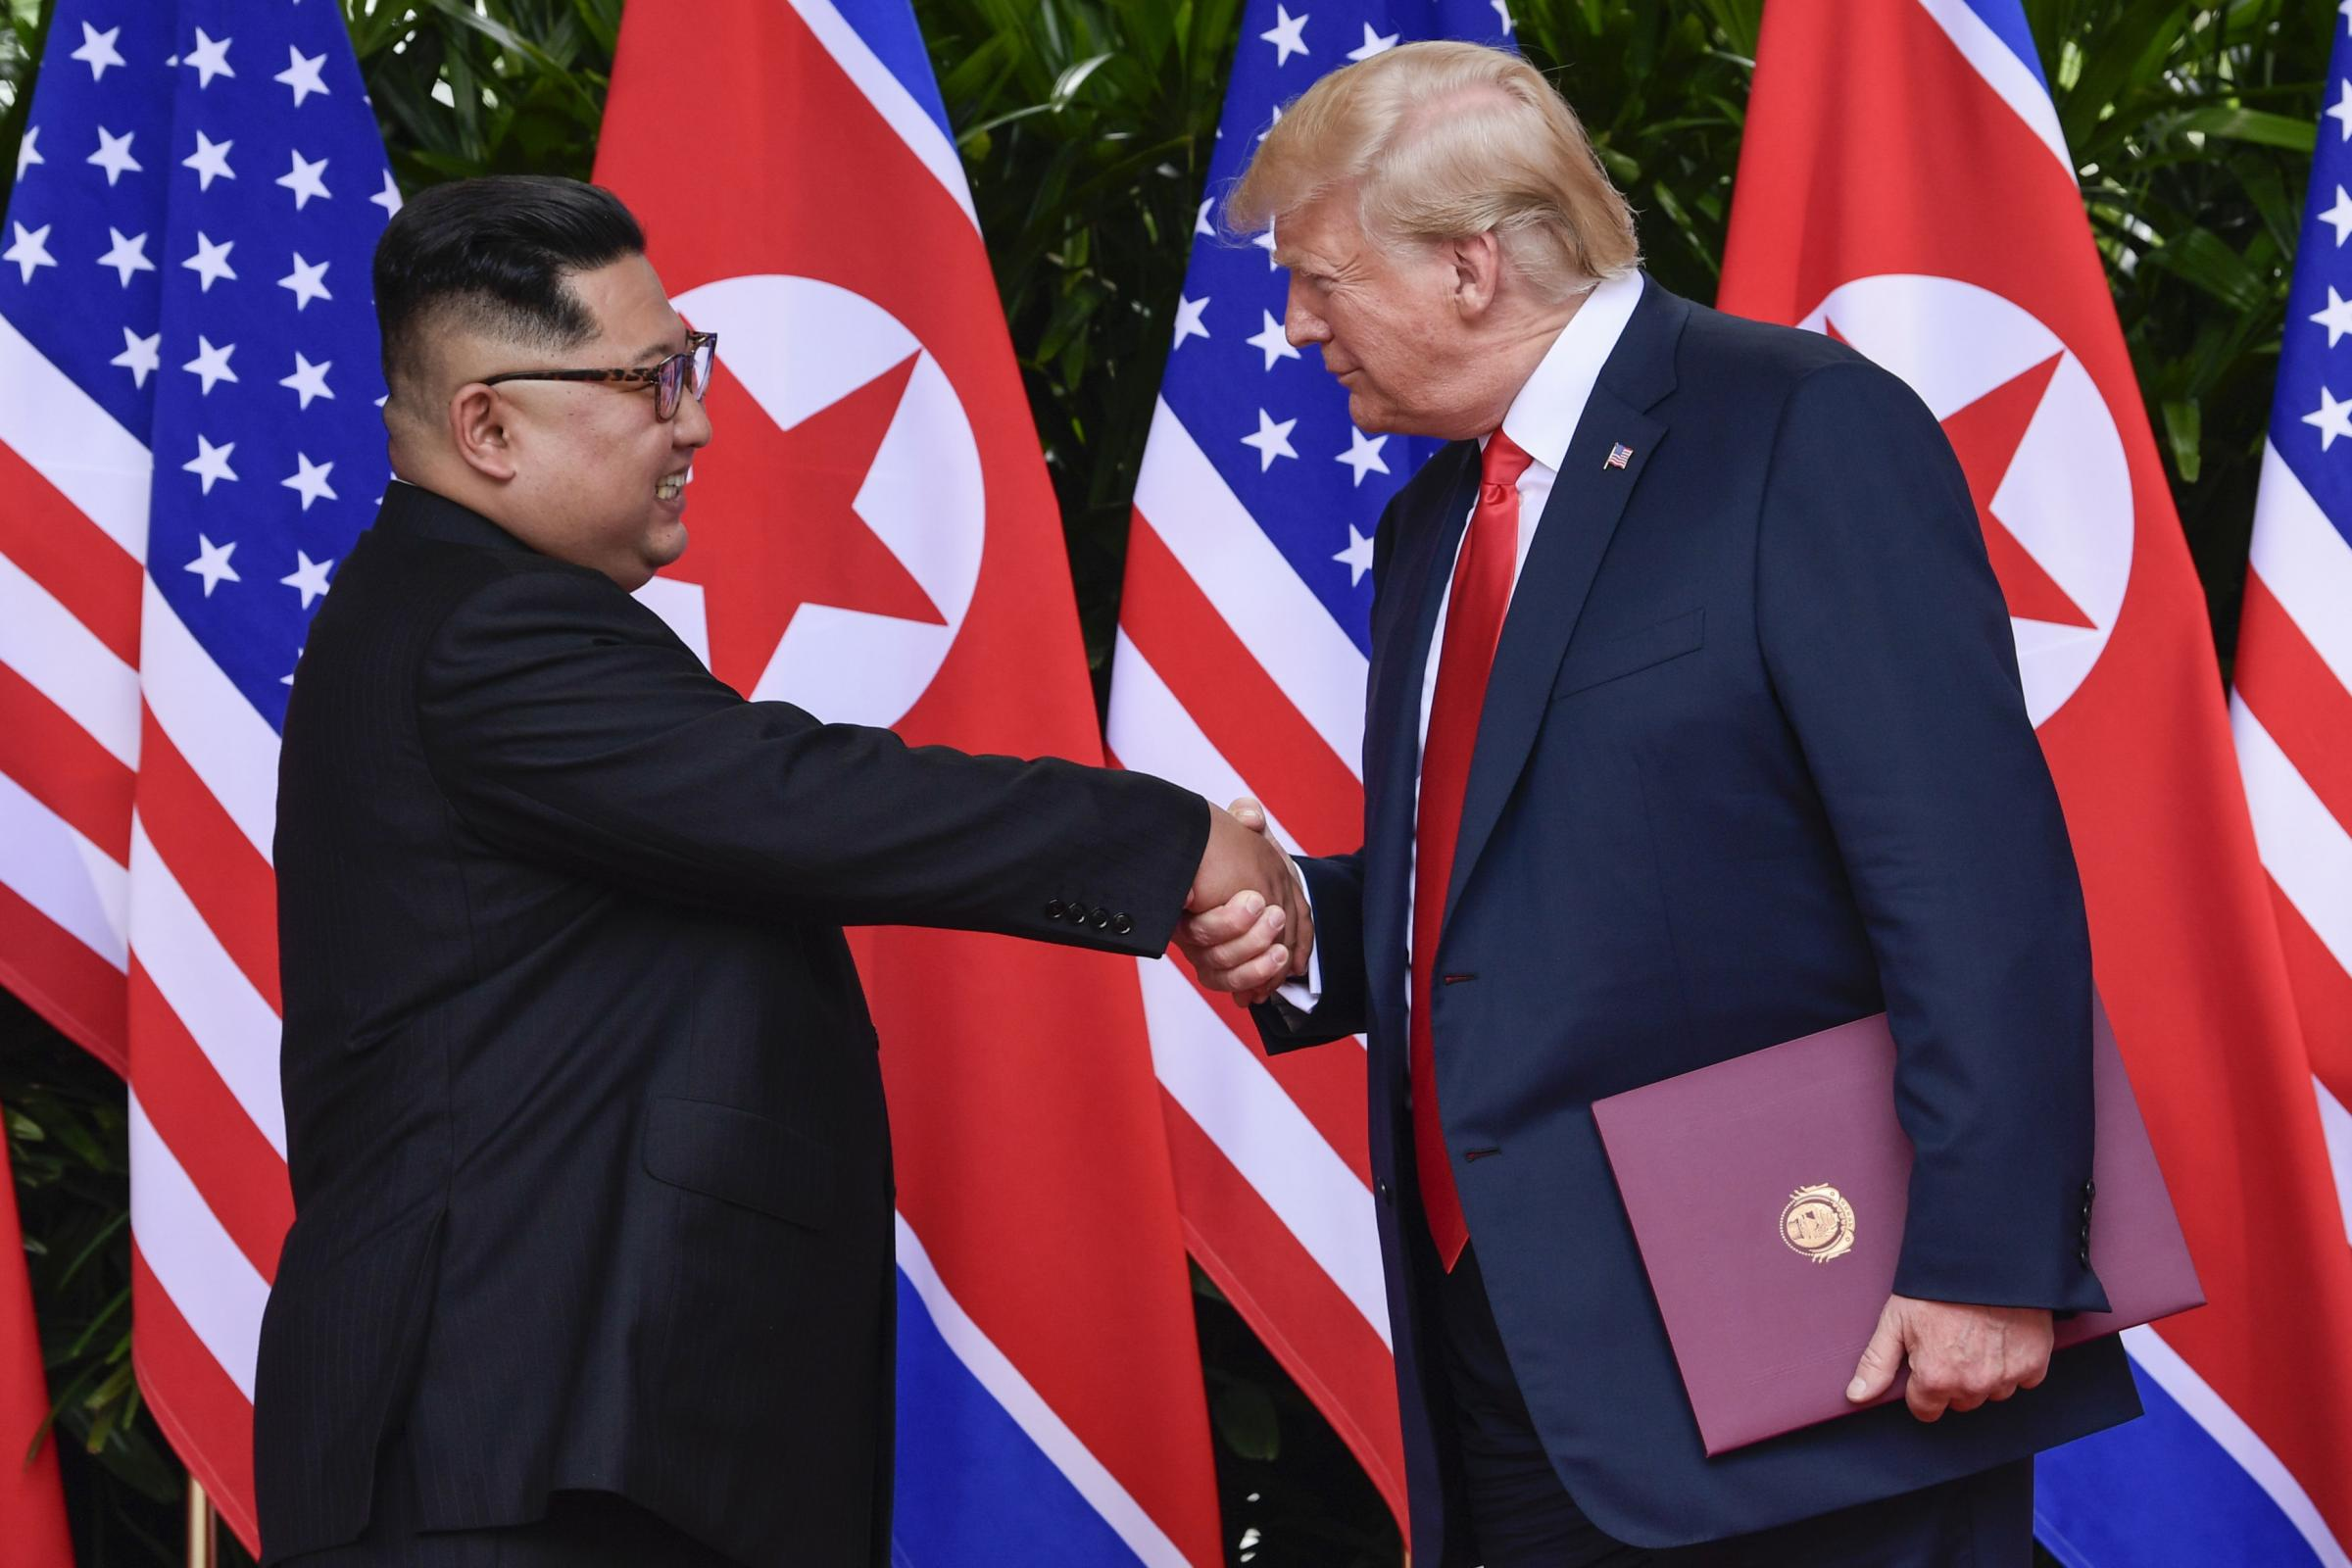 North Korea leader Kim Jong Un and U.S. President Donald Trump shake hands at the conclusion of their meetings at the Capella resort on Sentosa Island Tuesday, June 12, 2018 in Singapore. (AP Photo/Susan Walsh, Pool)